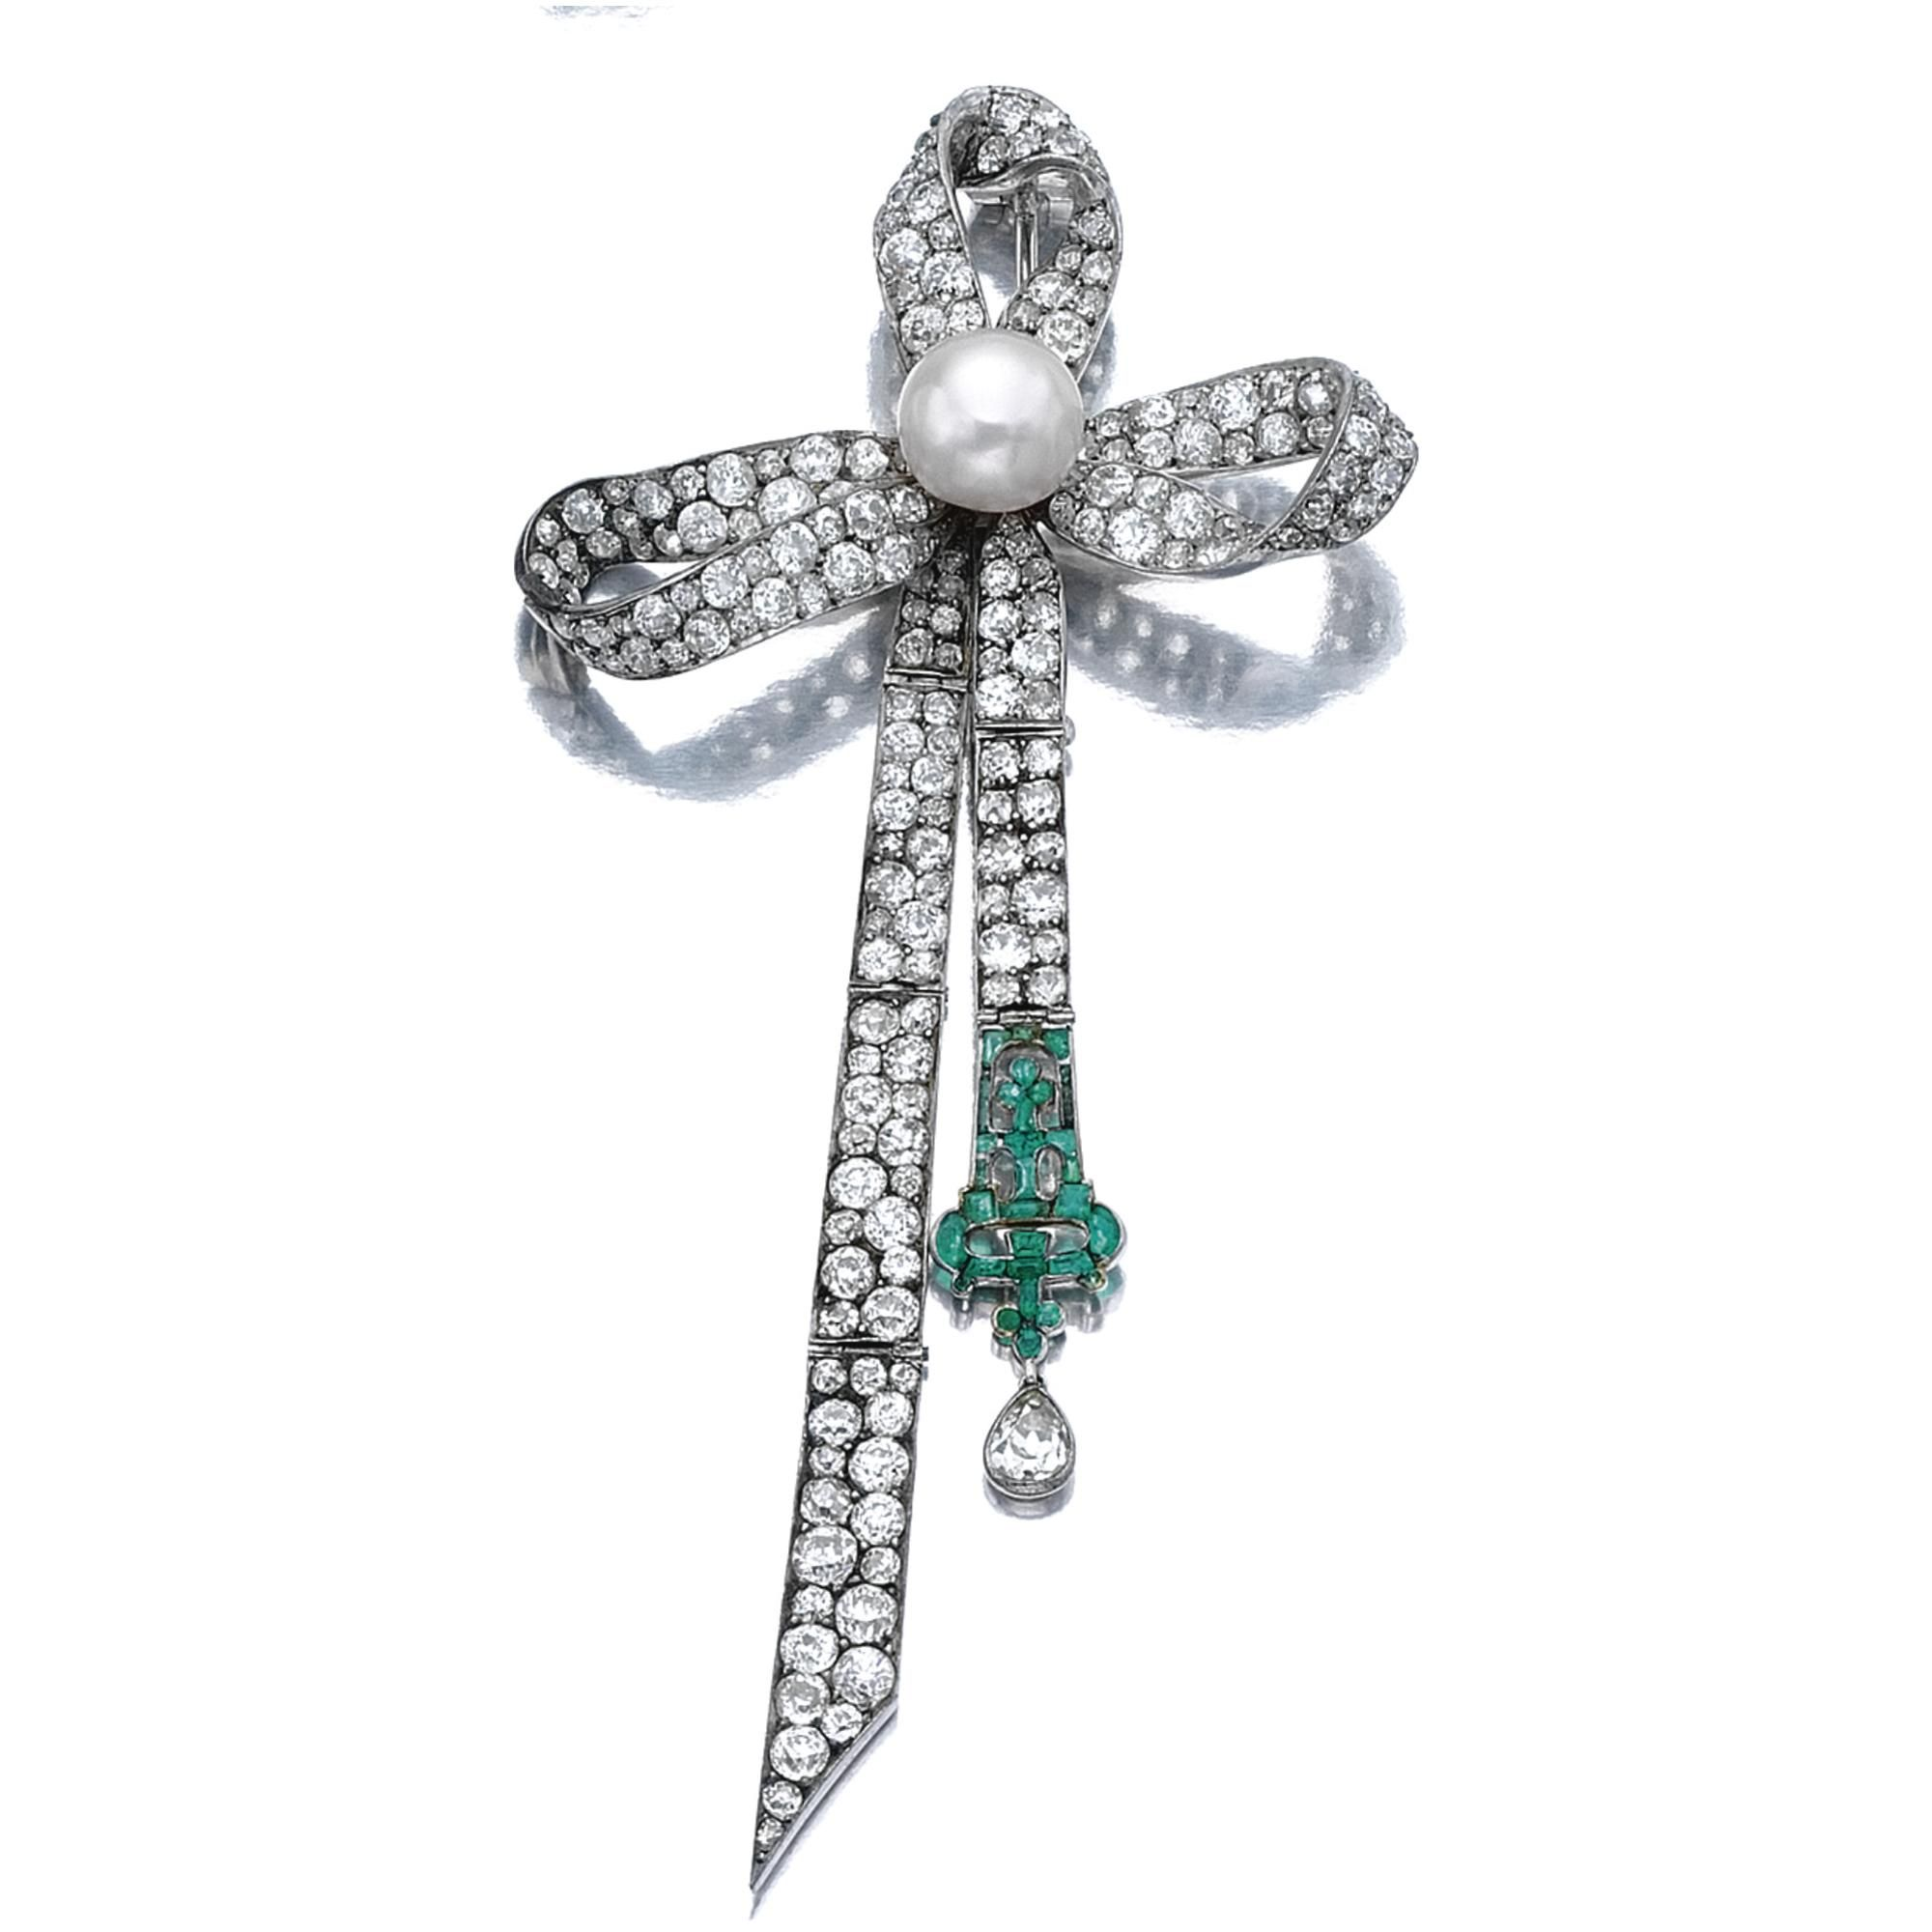 PEARL, EMERALD AND DIAMOND BROOCH Of stylised bow design, set with circular-, single-cut, cushion- and pear-shaped diamonds, to the button-shaped pearl accent, suspending a calibré- and circular-cut emerald detail.